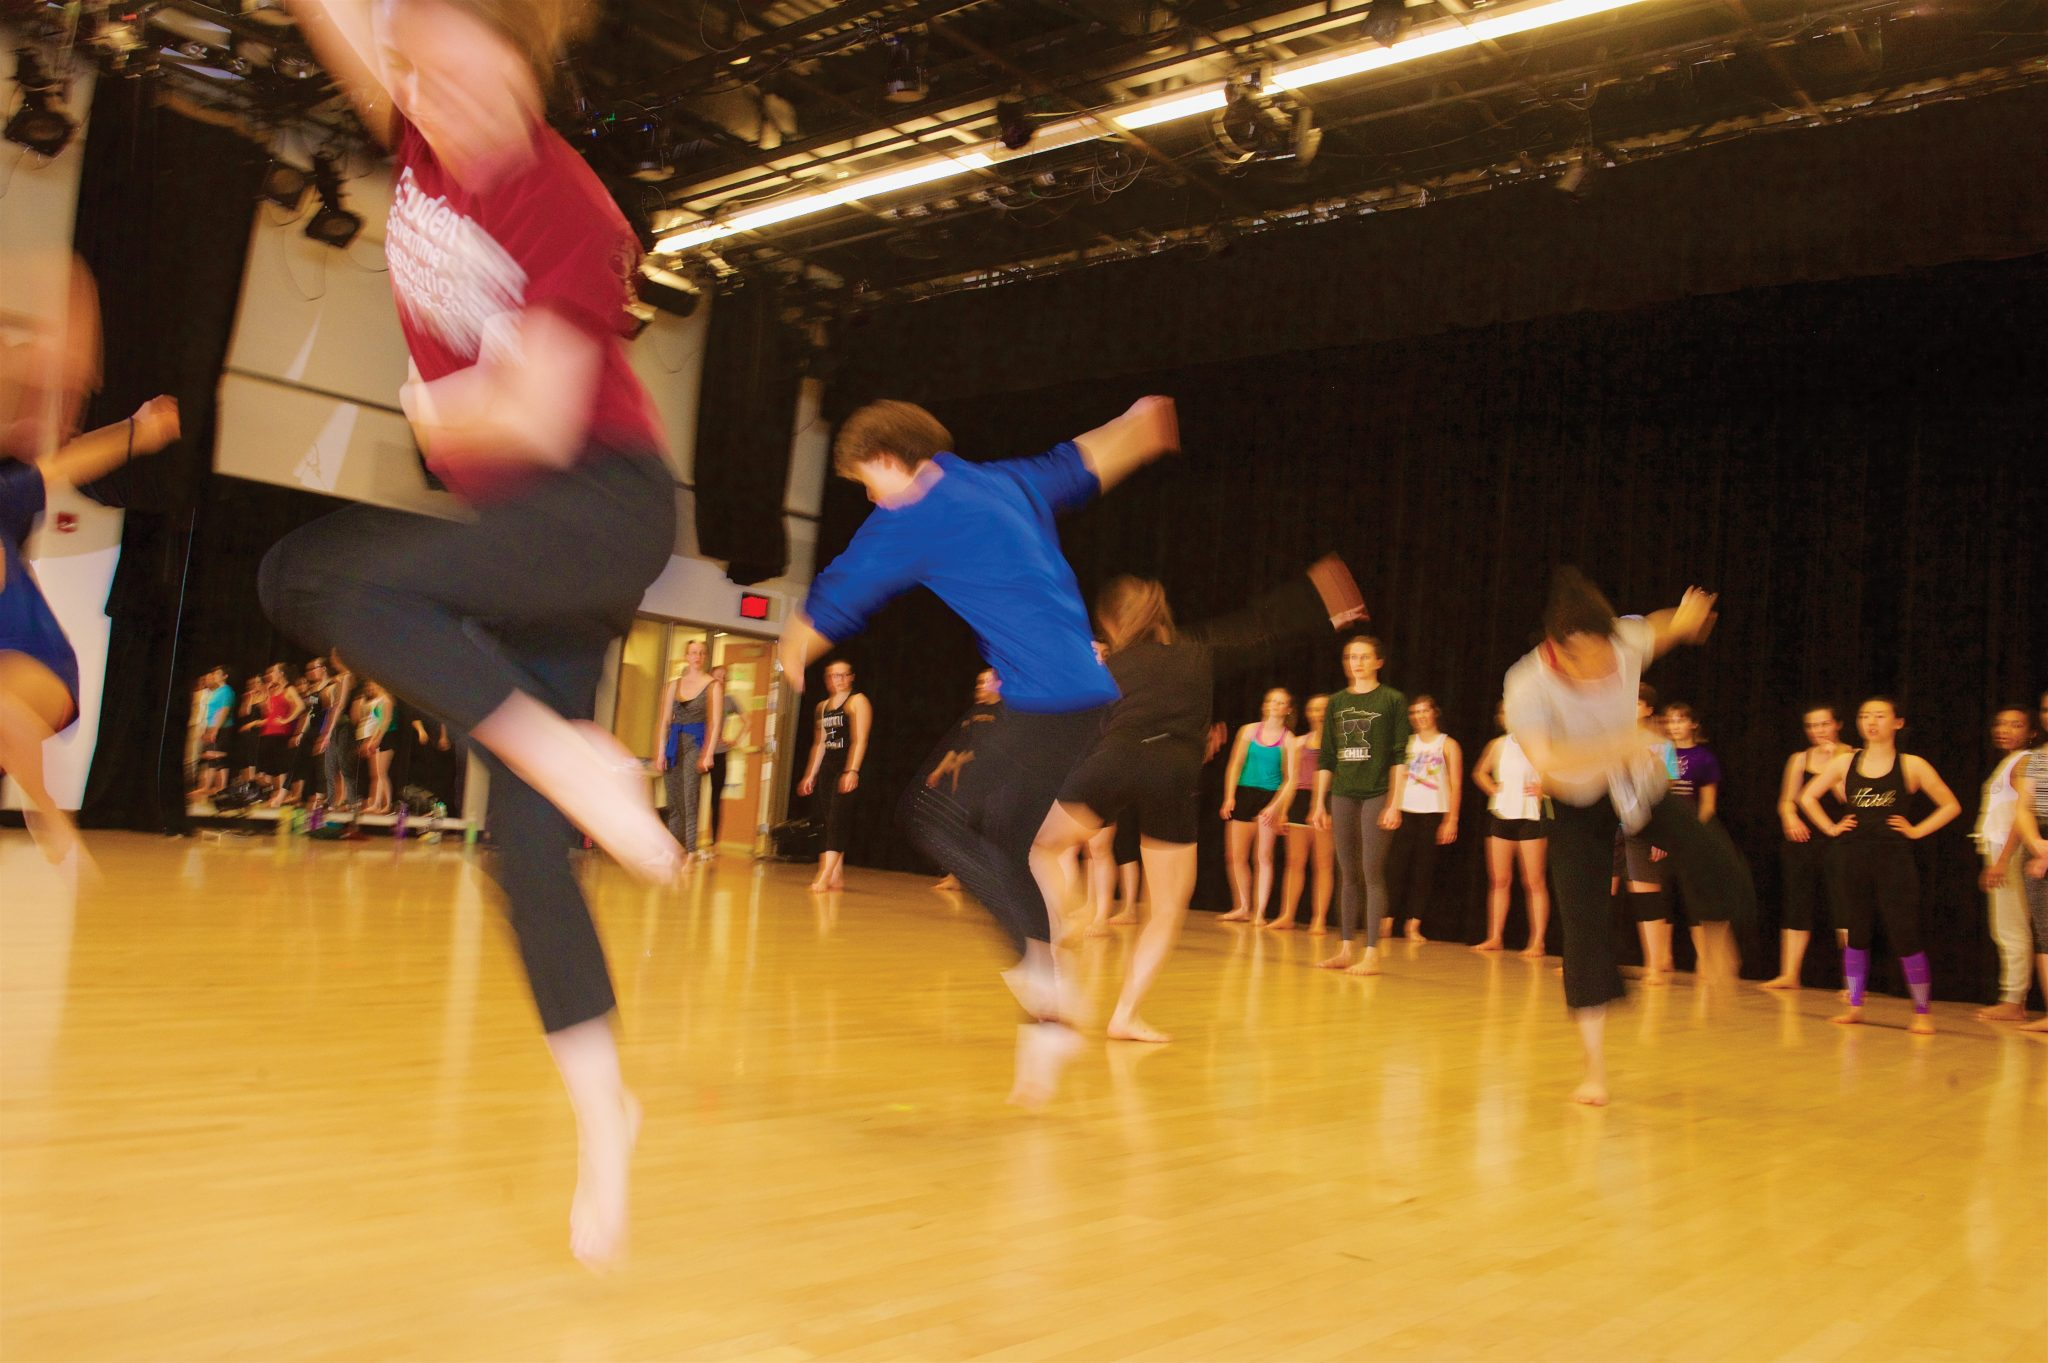 Blurred dancers in a large practice room.